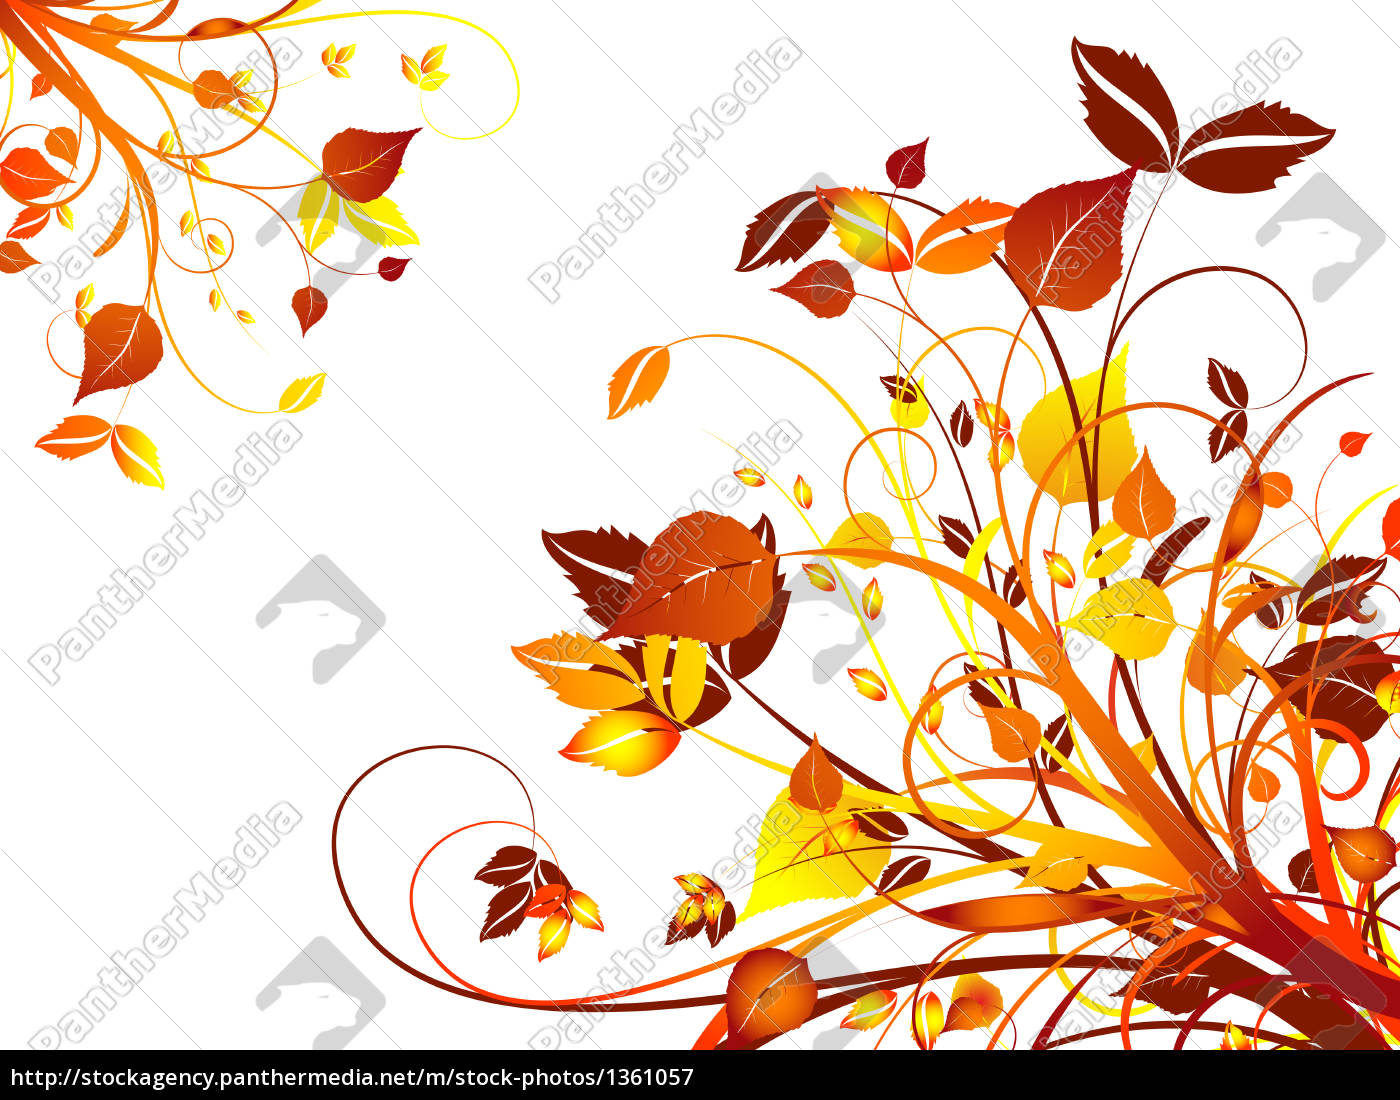 abstract, floral, design - 1361057